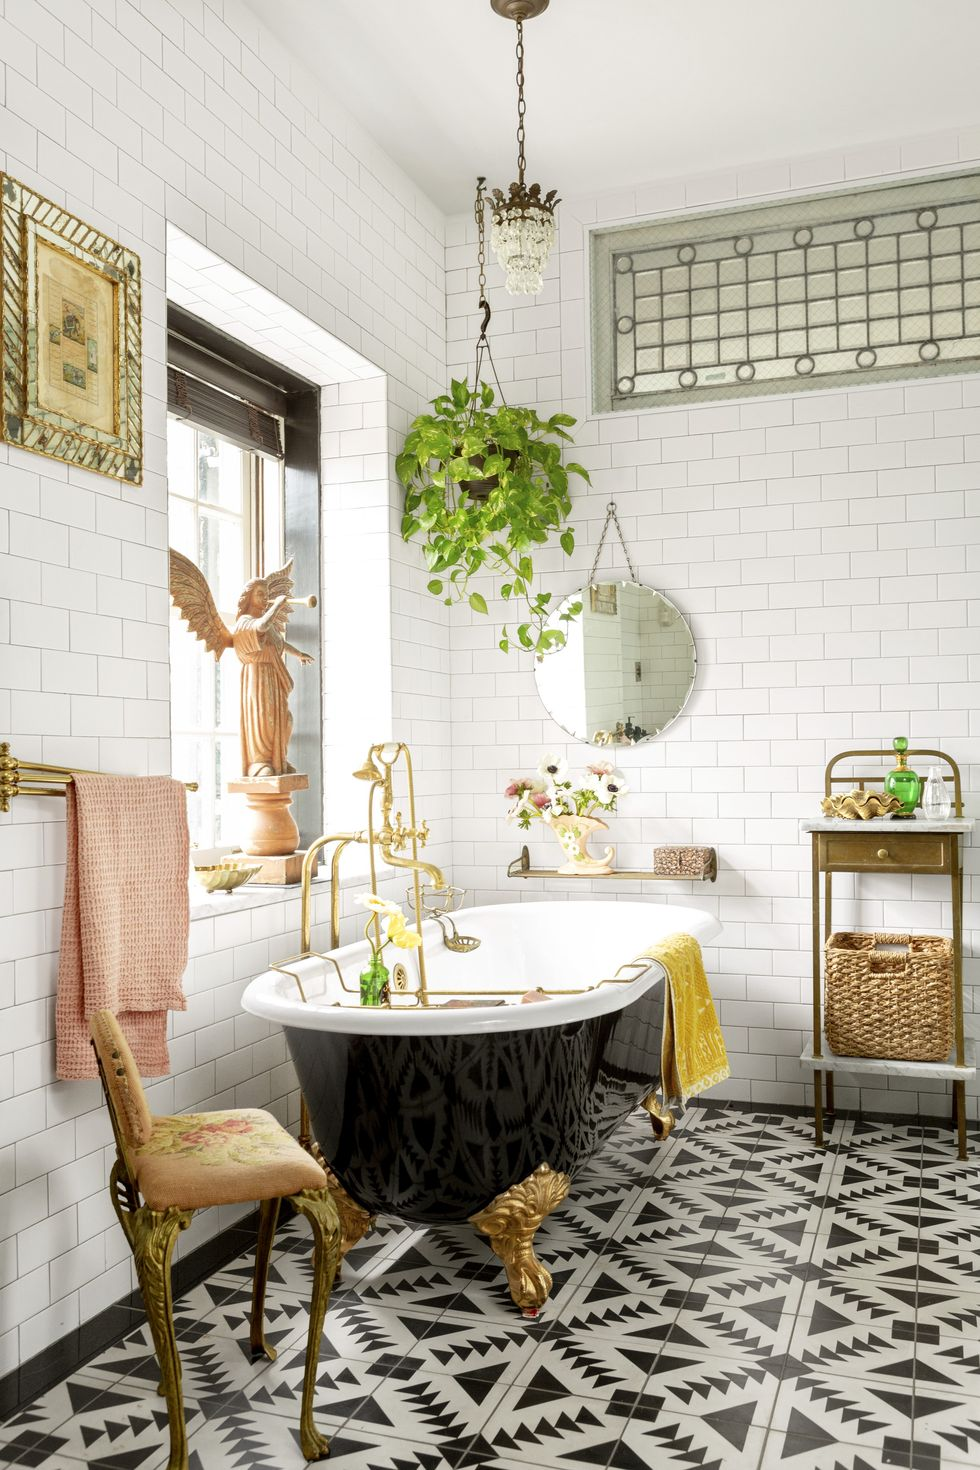 Black clawfoot tub and gold feet against a wall of subway tile and plants.